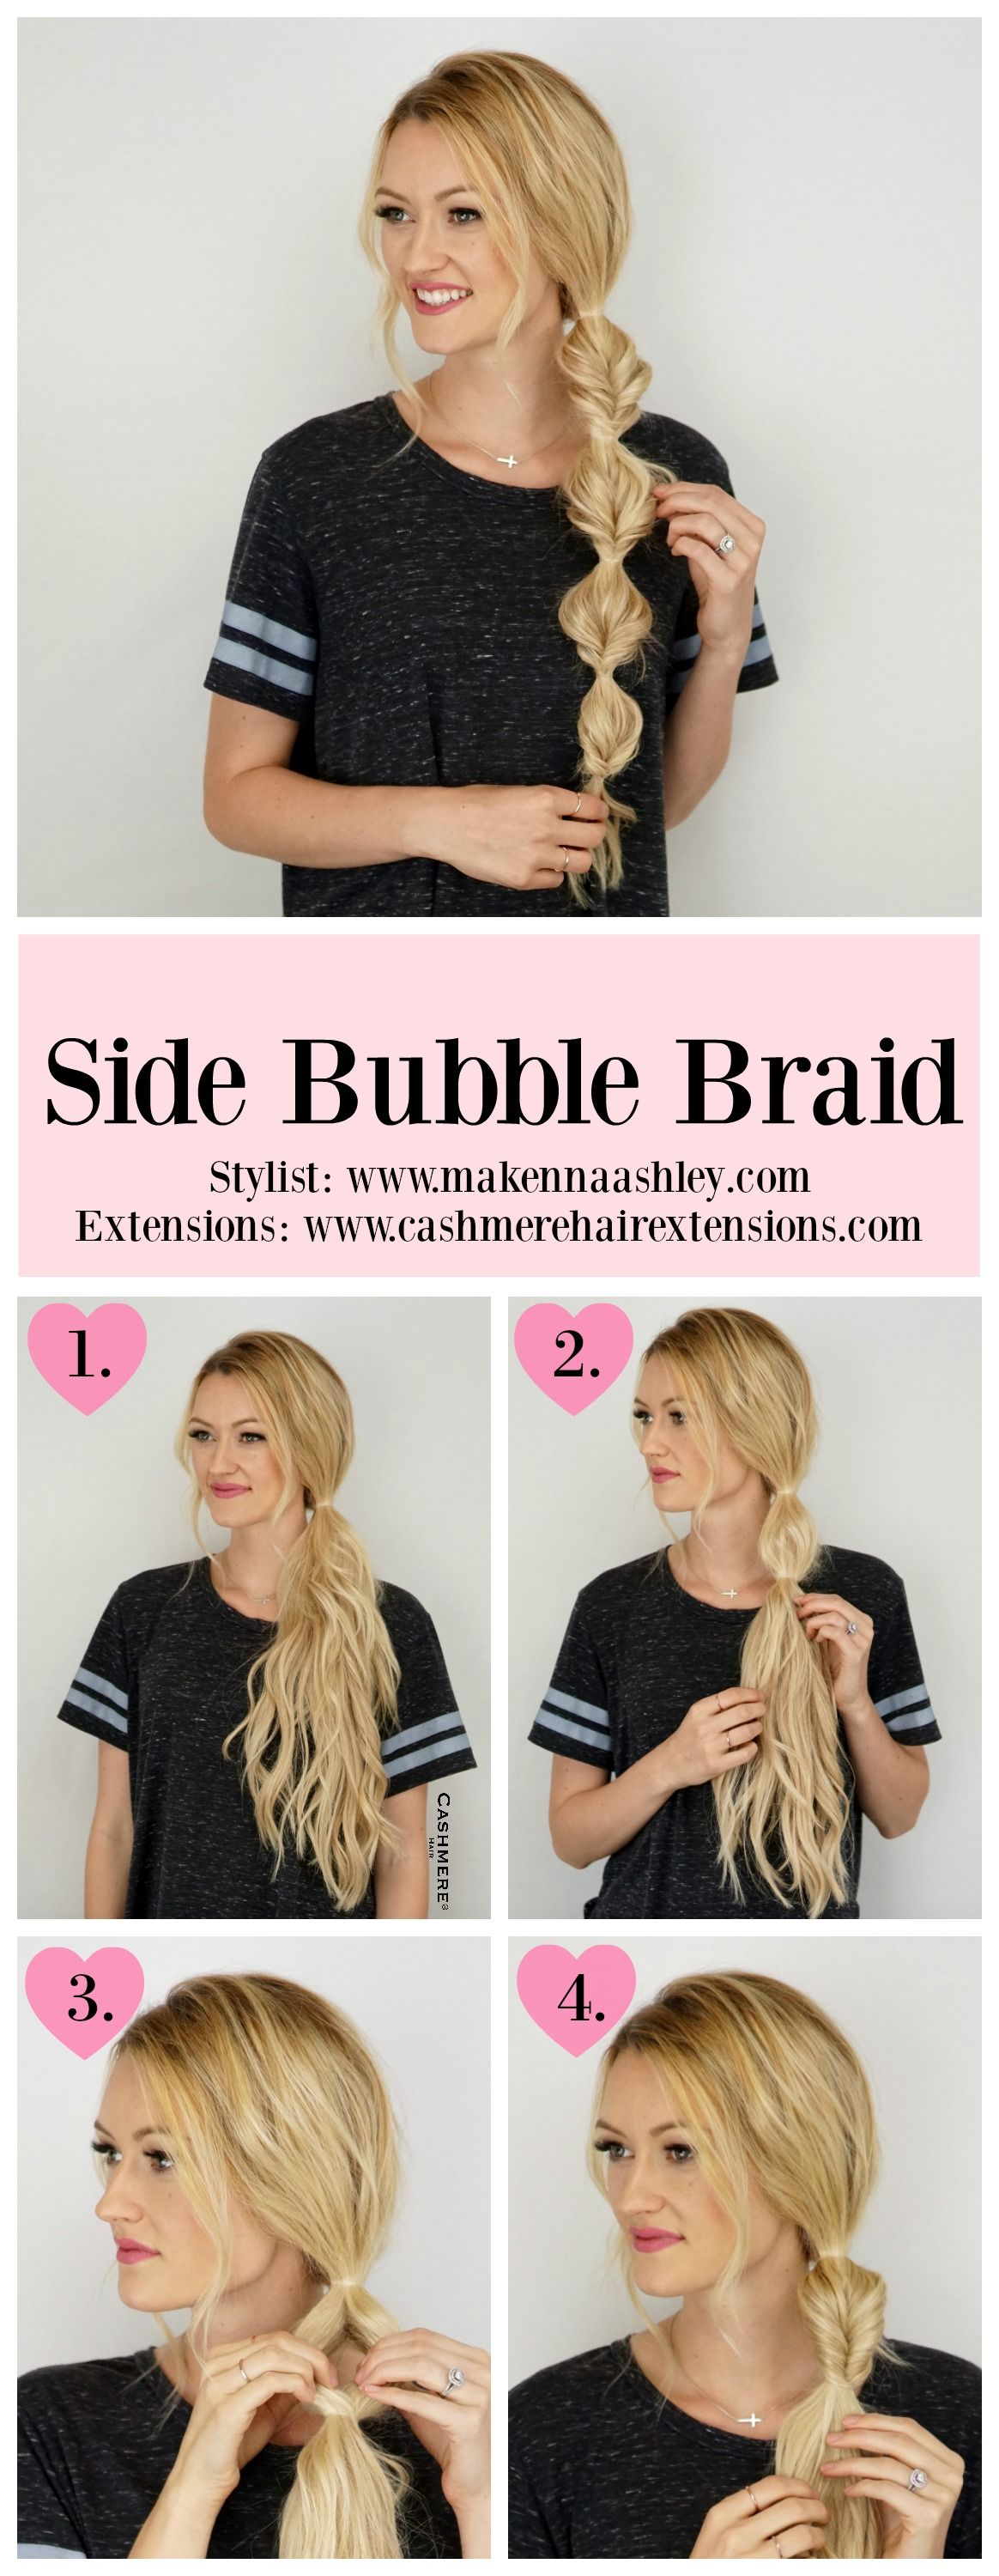 Clip in hair extensions tutorial faqs hair extensions side bubble braid looking for hair extensions to refresh your hair look instantly kinghair only focus on premium quality remy clip in hair pmusecretfo Gallery